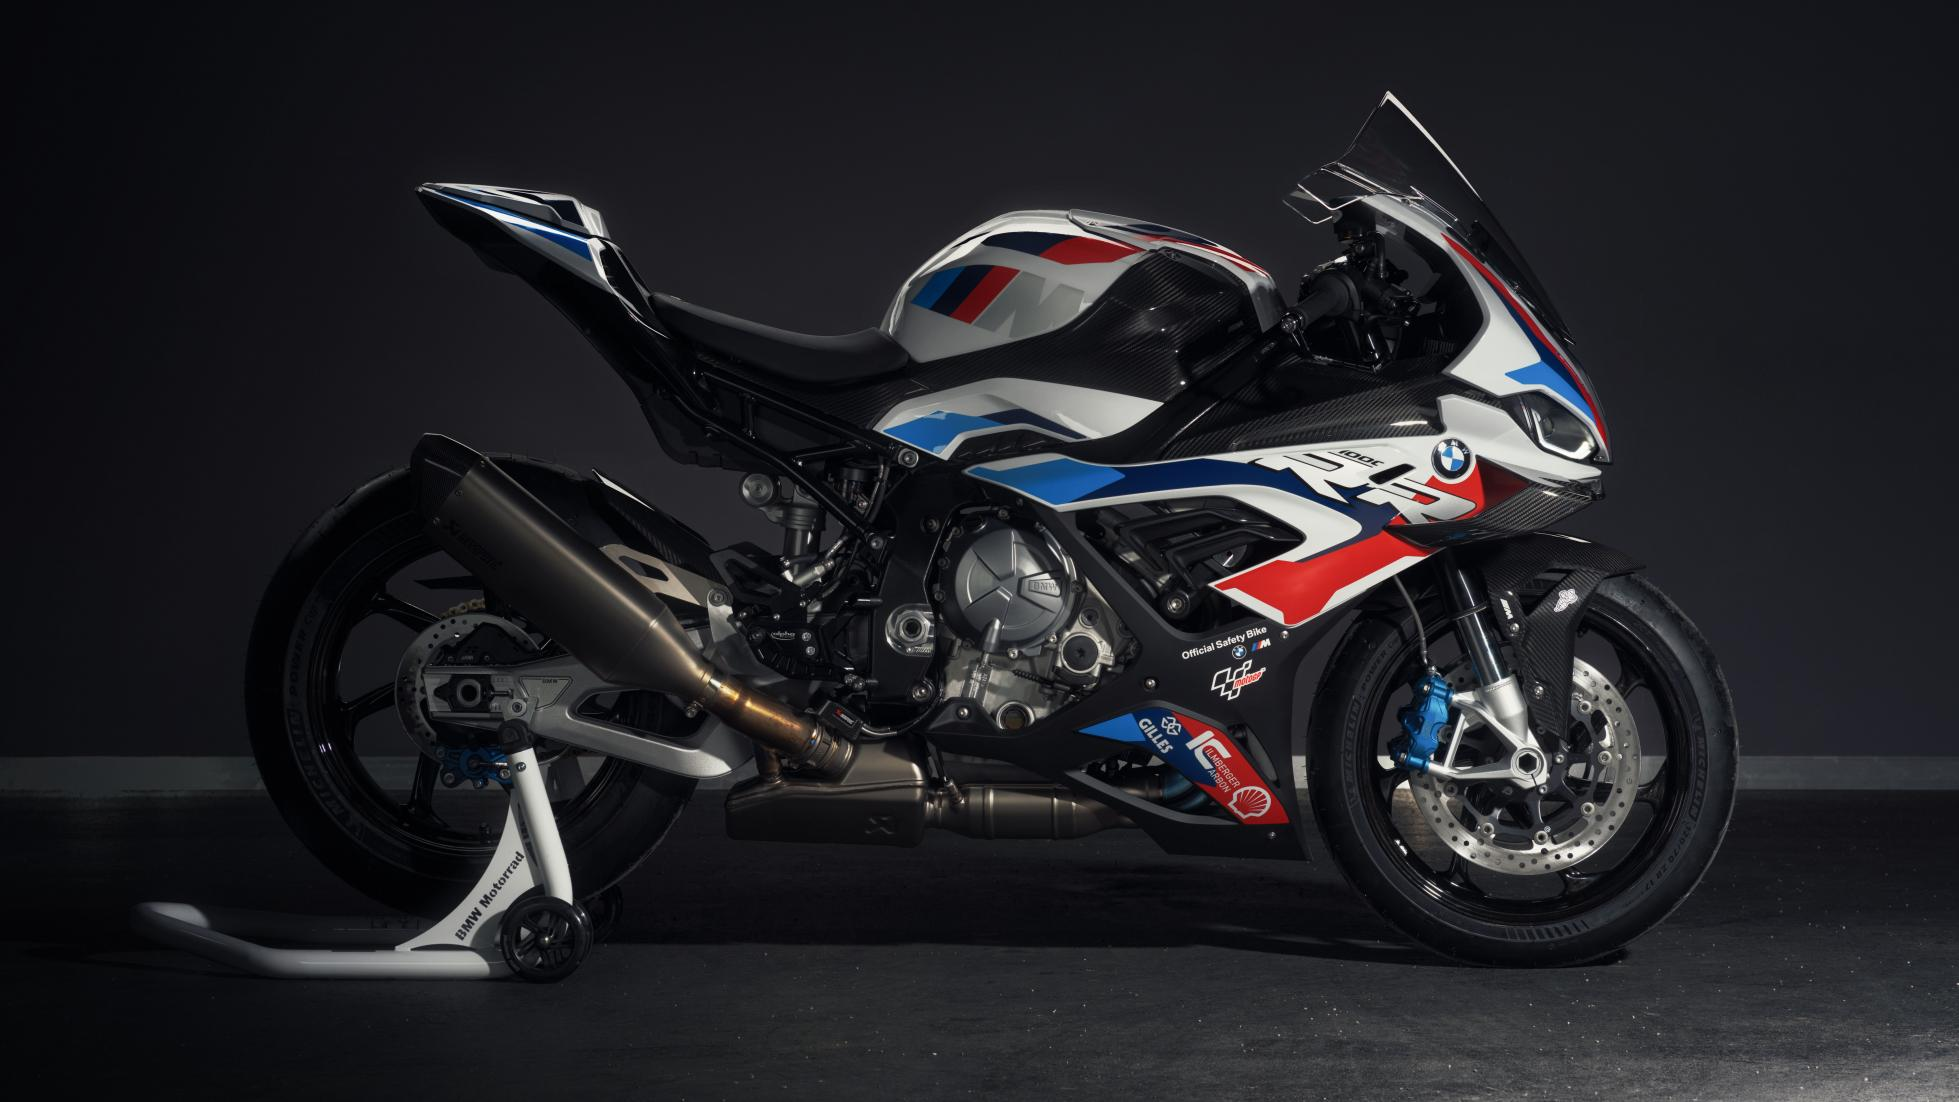 The BMW 1000 RR Bike with MotoGP Livery, in Profile